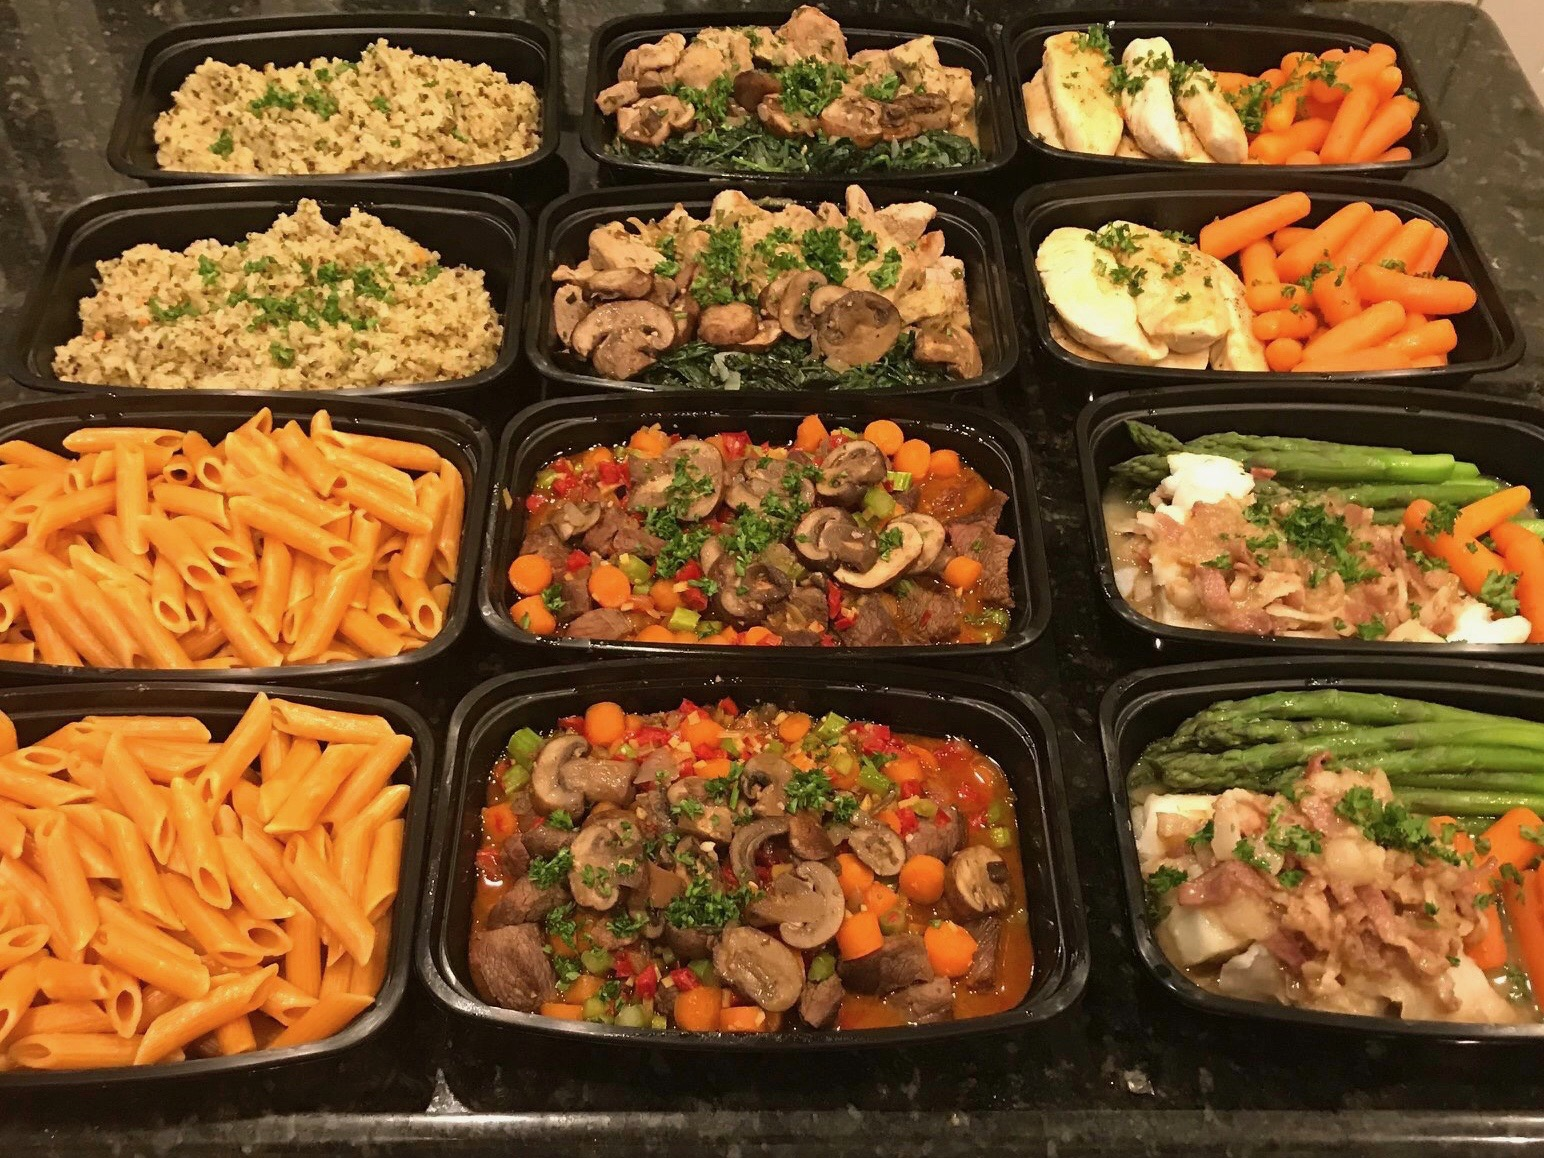 Fresh, Healthy Meals prepared in your home with your preferences in mind by a talented and recognized chef. - Efficient storage, easy-for-you preparation, so delicious and so good for you!